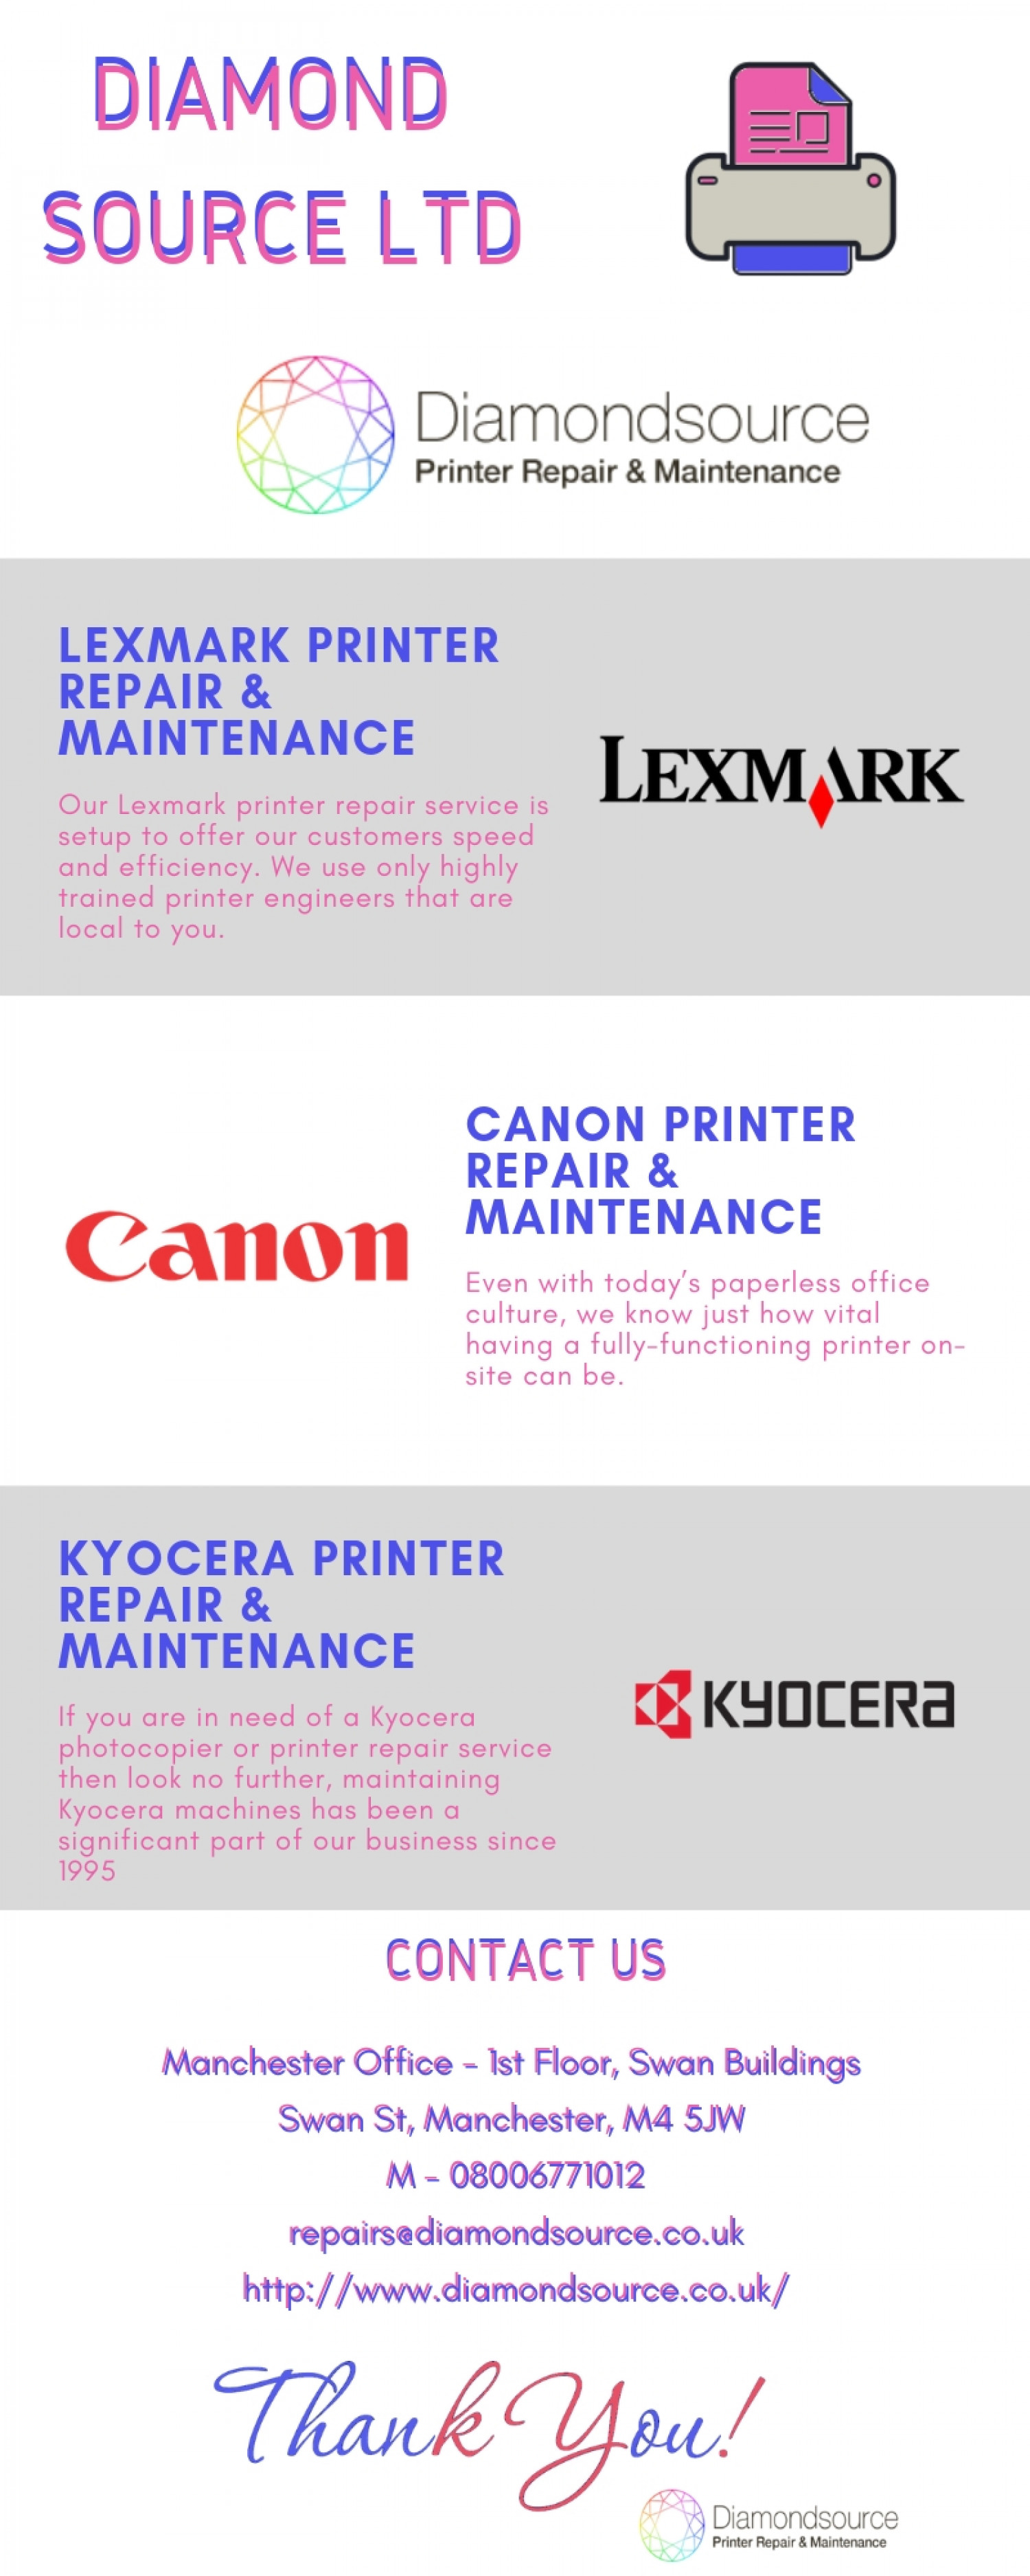 Epson Printer Repair and Maintenance - Diamond Source Ltd Infographic